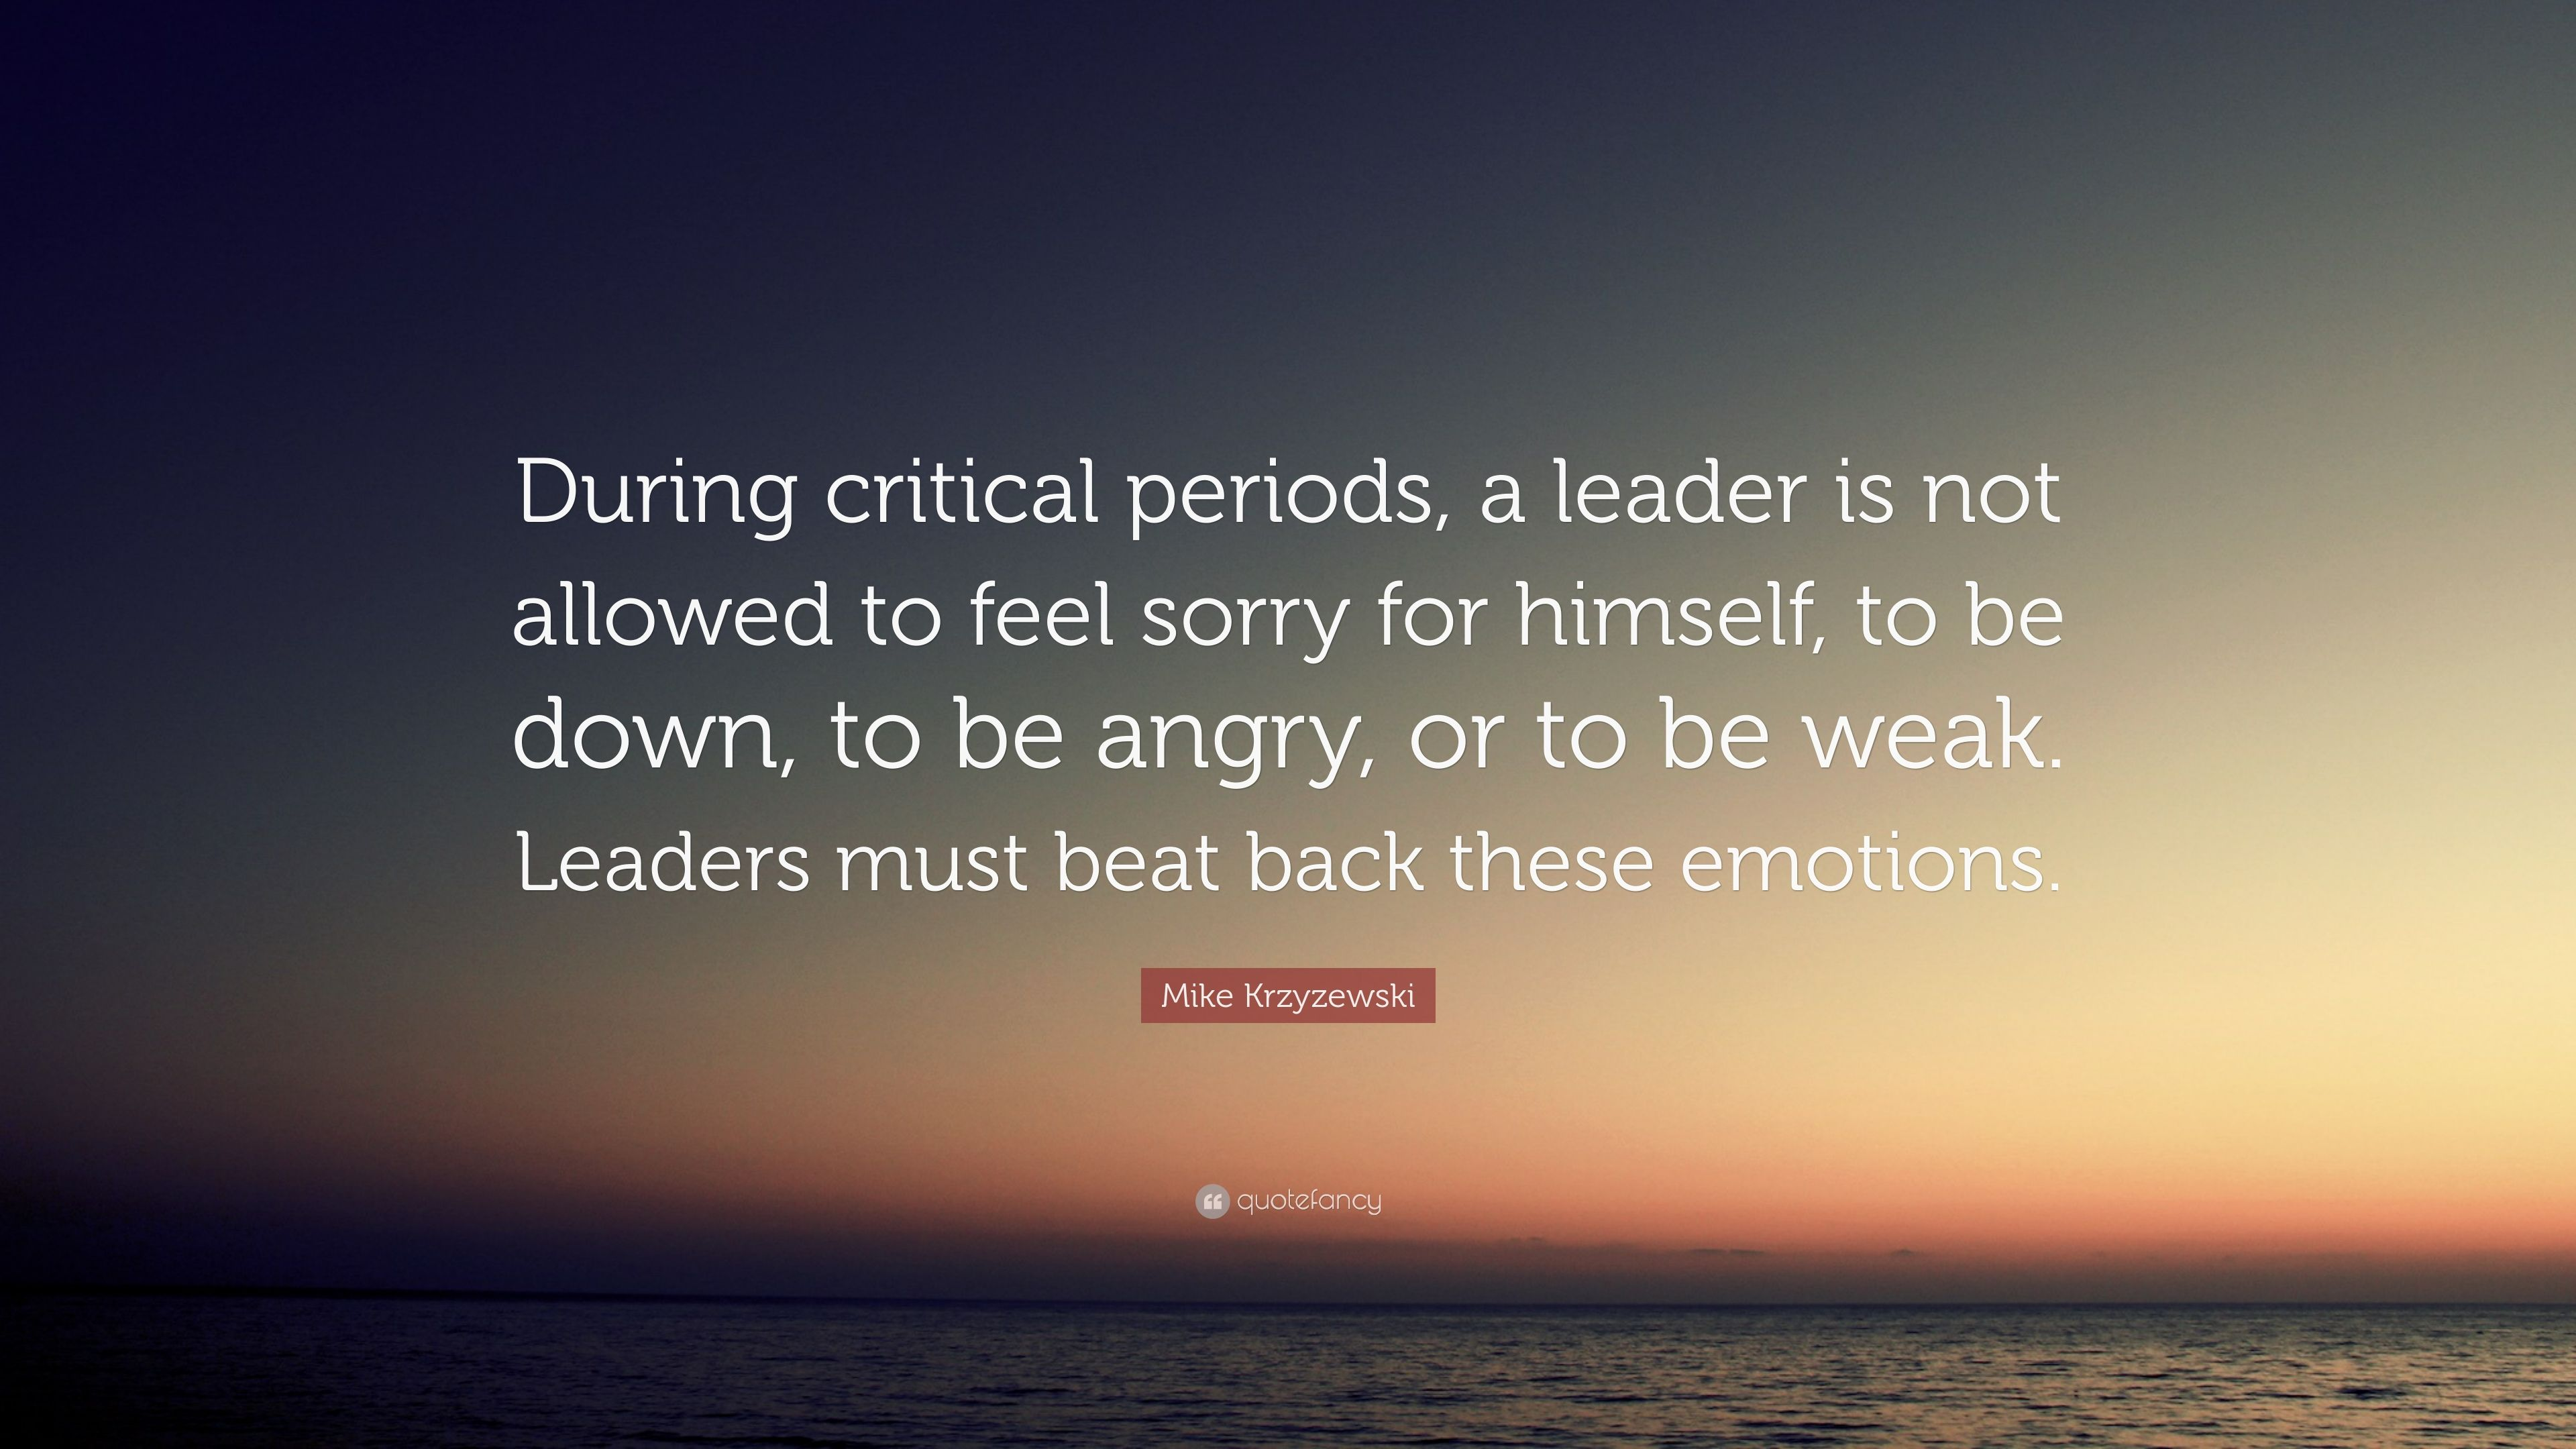 Perfect Mike Krzyzewski Quote: U201cDuring Critical Periods, A Leader Is Not Allowed To  Feel